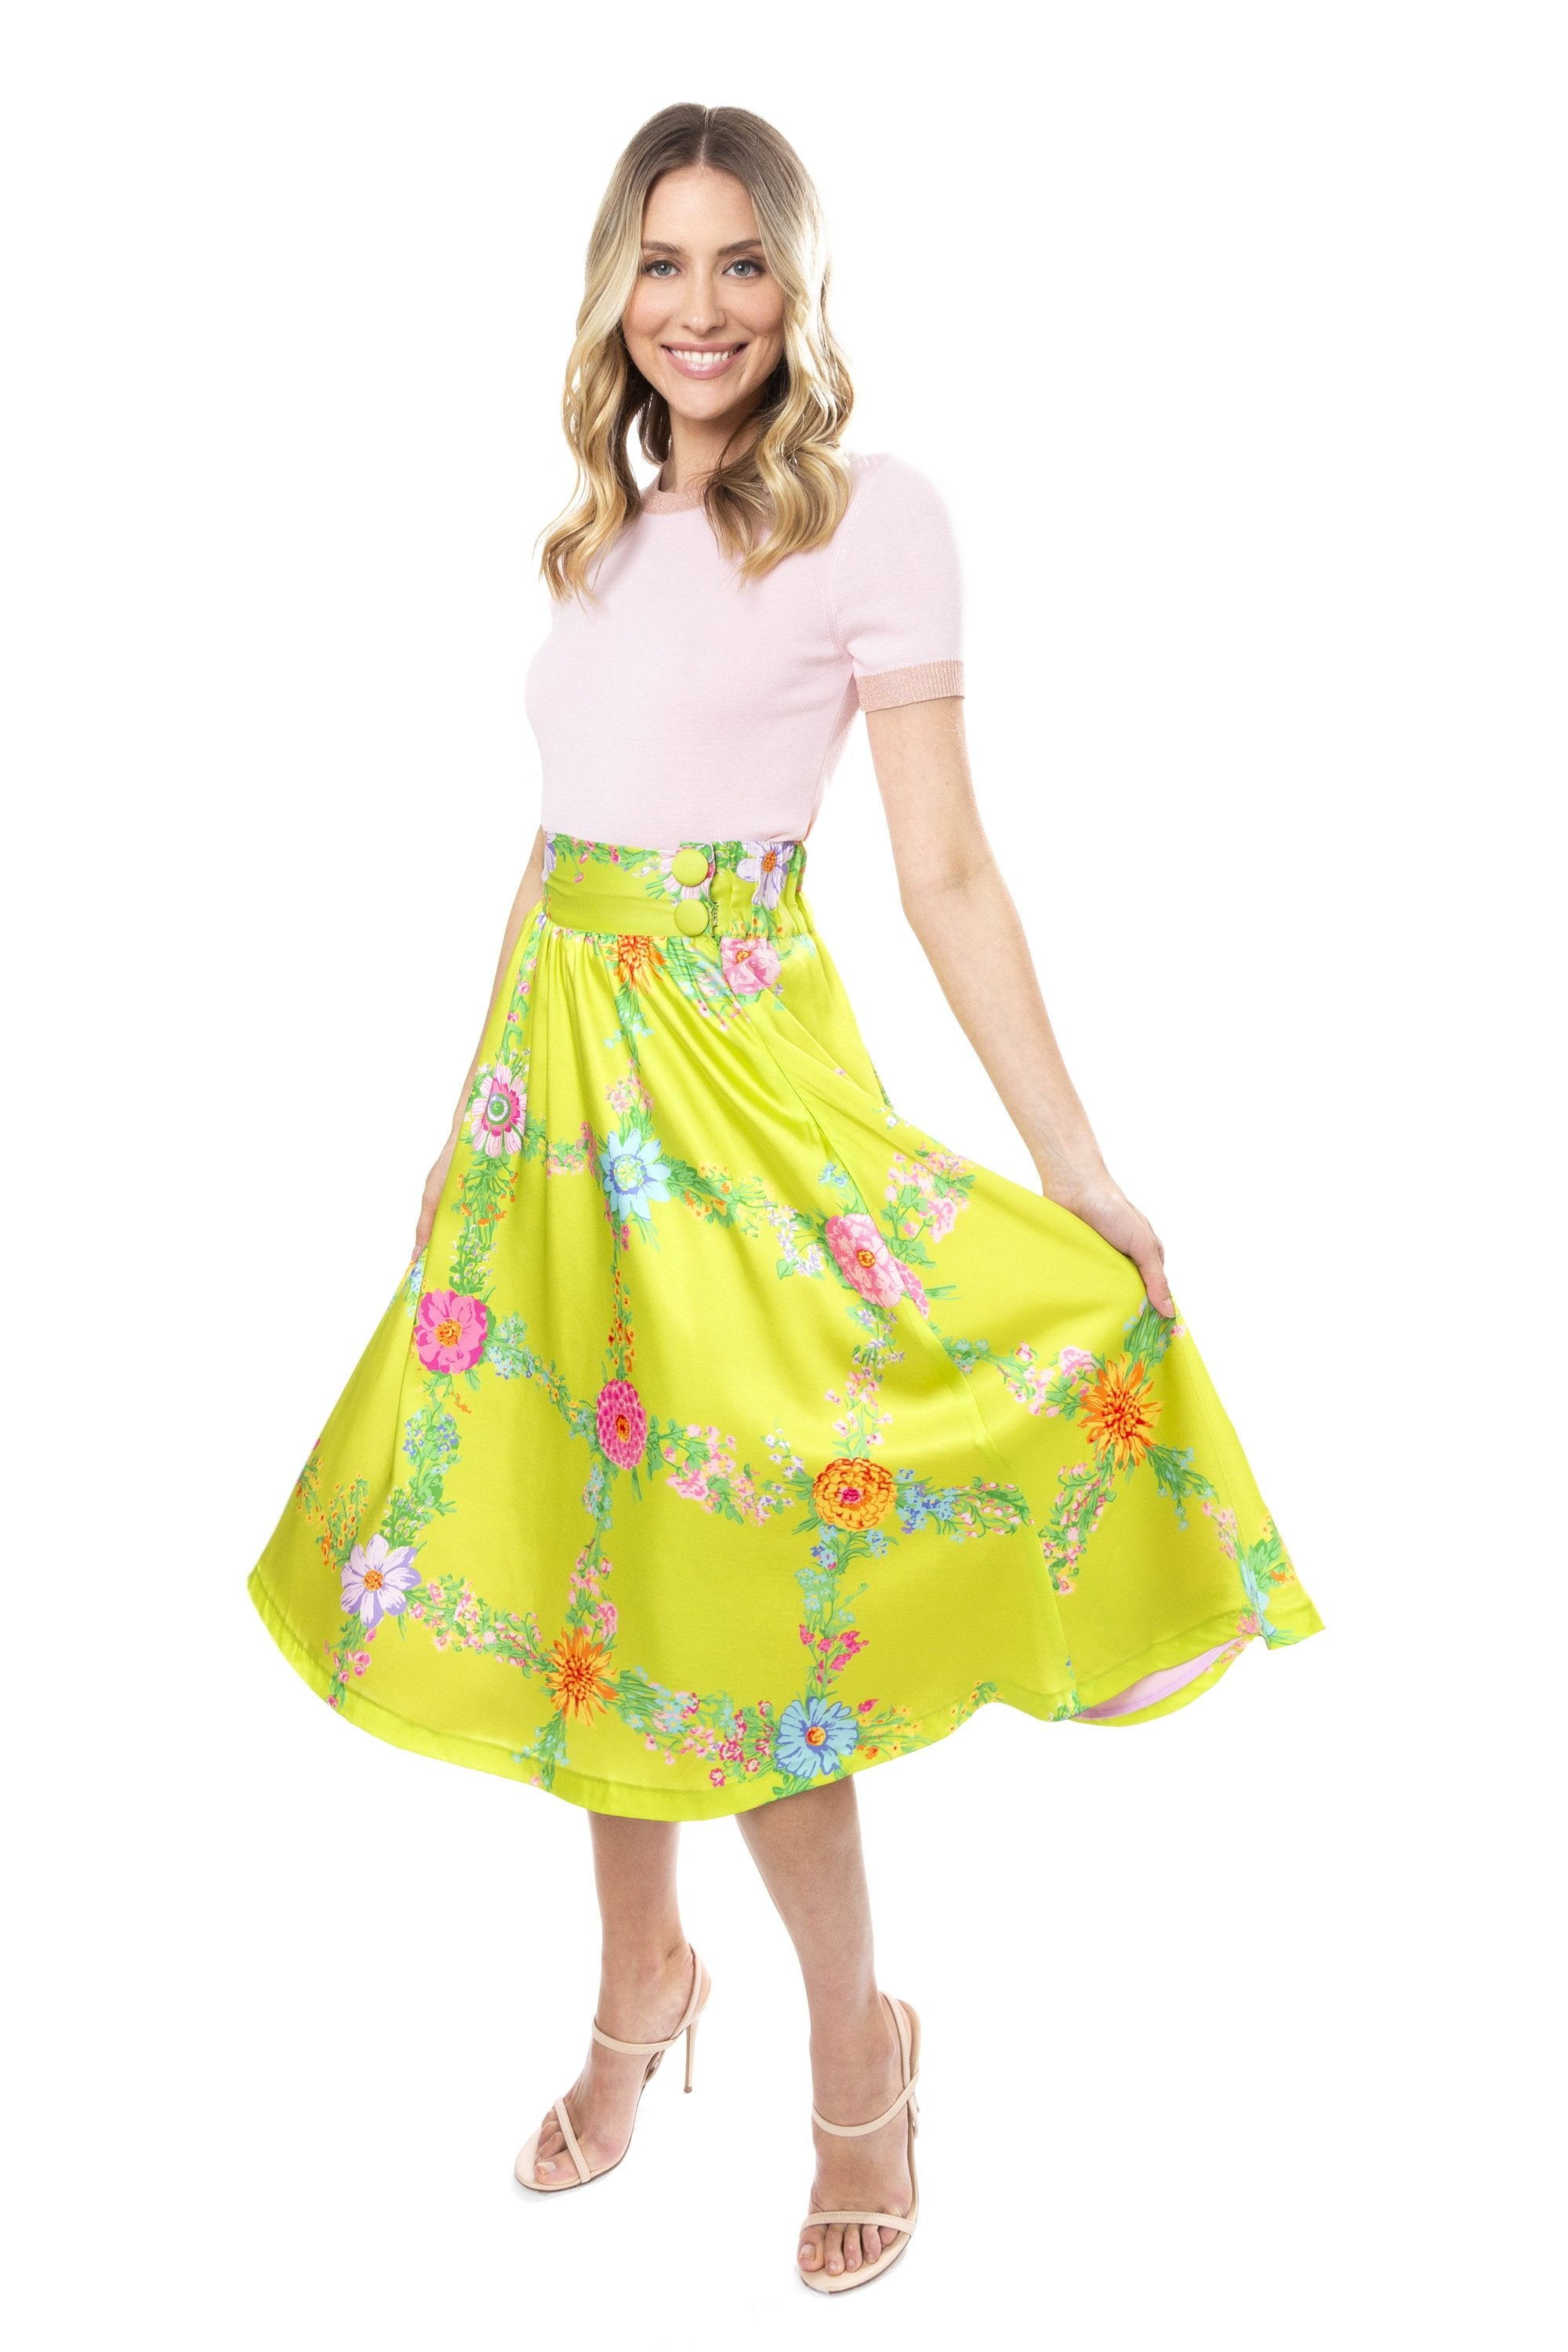 Tulip Skirt in Skittle Print